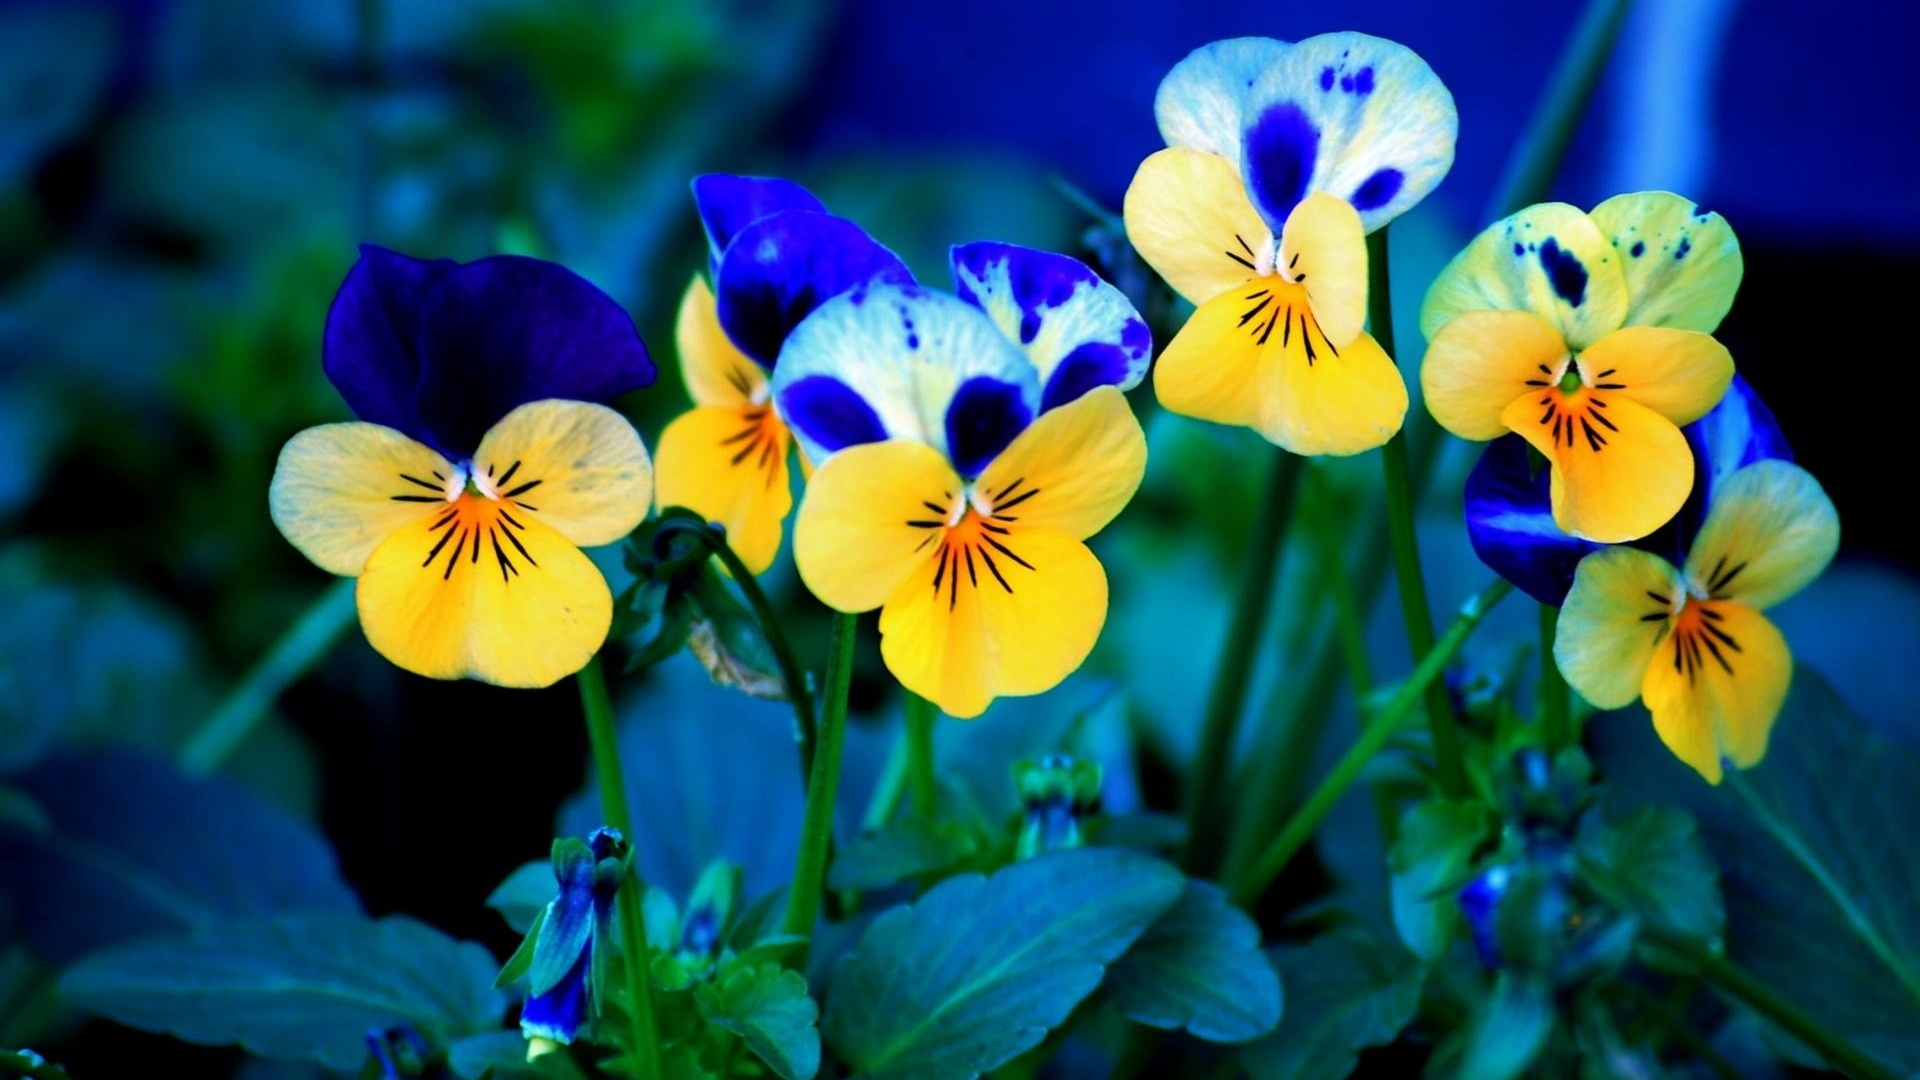 1920x1080 Spring Flowers desktop PC and Mac wallpaper 1920x1080